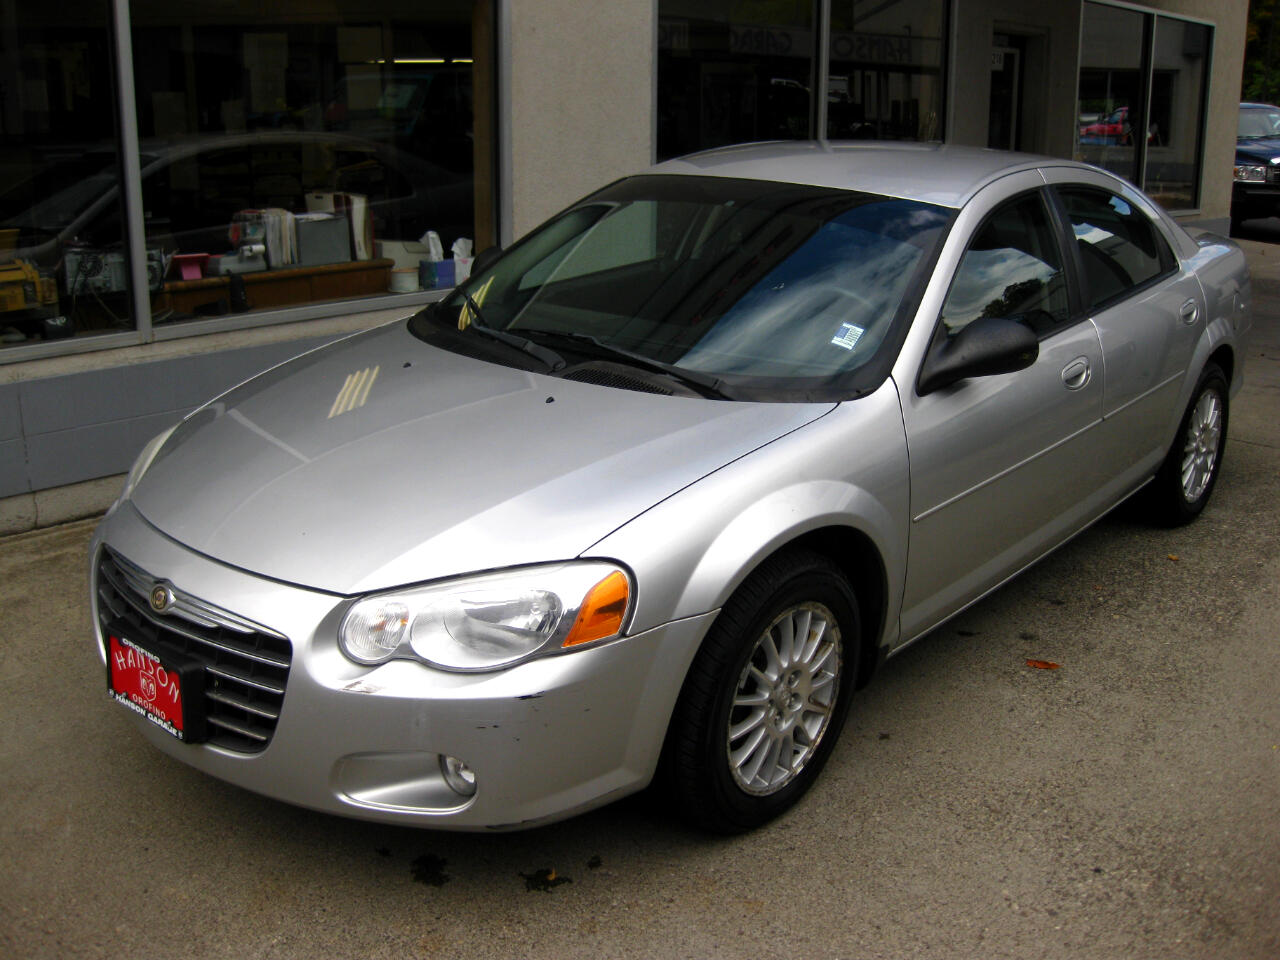 Chrysler Sebring 2004 for Sale in Orofino, ID